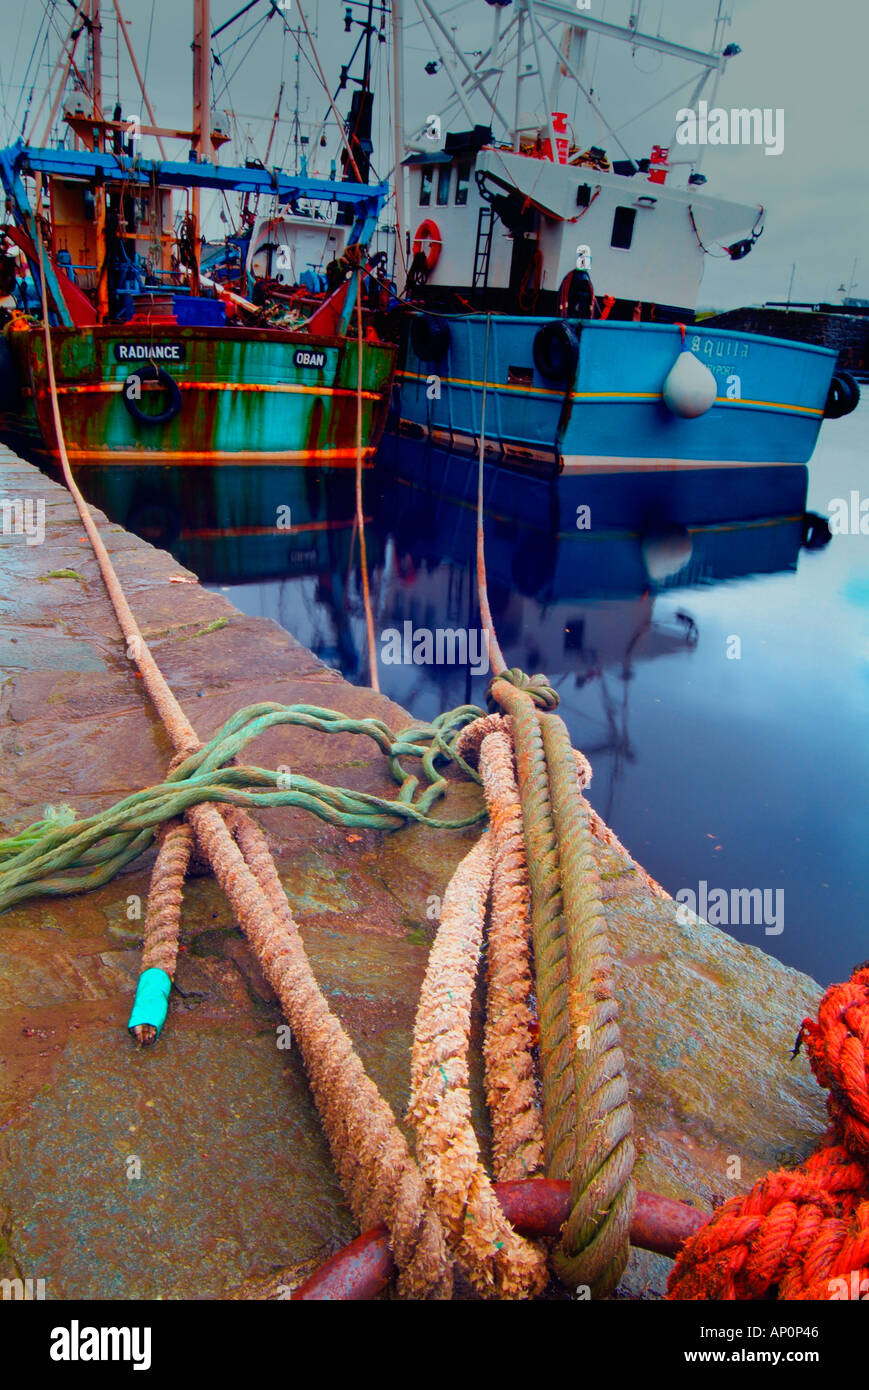 Fishing boat tied up at crinan harbour Argyll Scotland - Stock Image